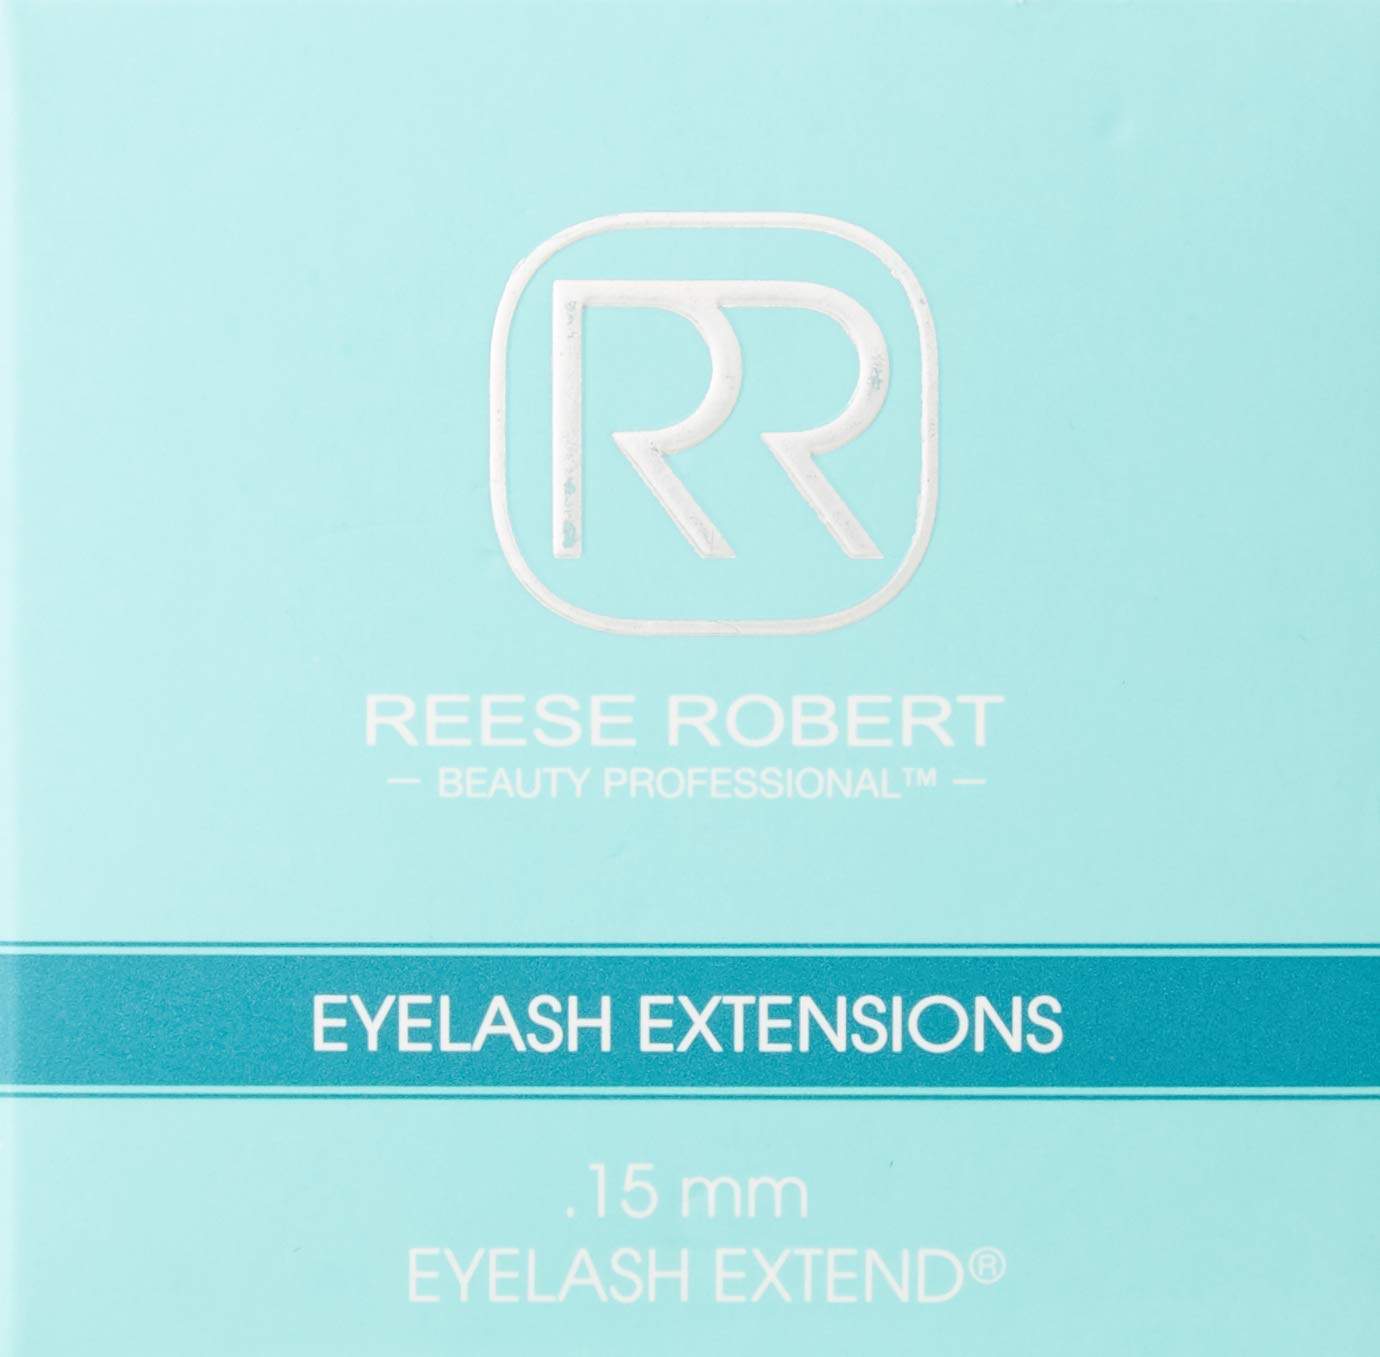 120a8386137 Amazon.com: Reese Robert Beauty Eyelash Extend Pre-Curled Lash Extensions,  14mm: Beauty